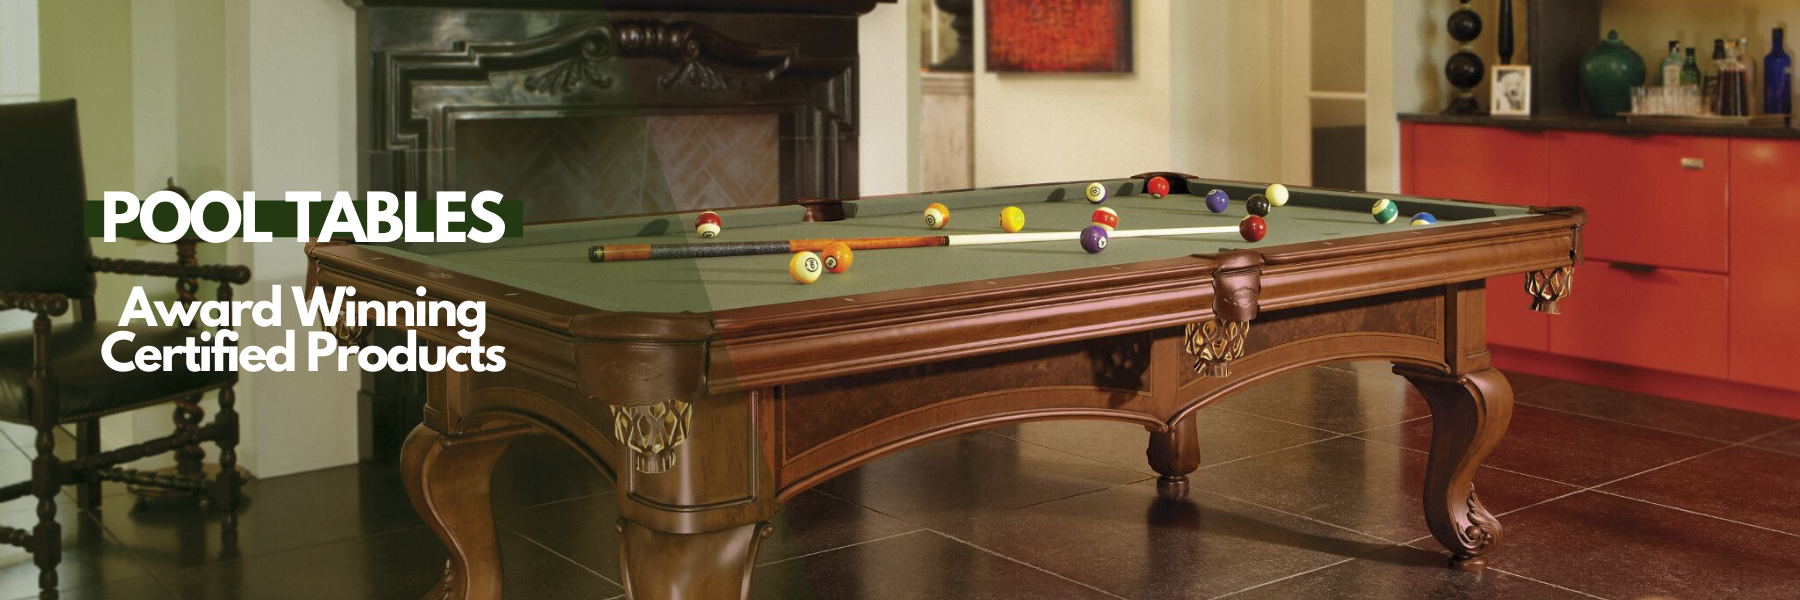 Why Should You Buy A Brunswick Pool Table?